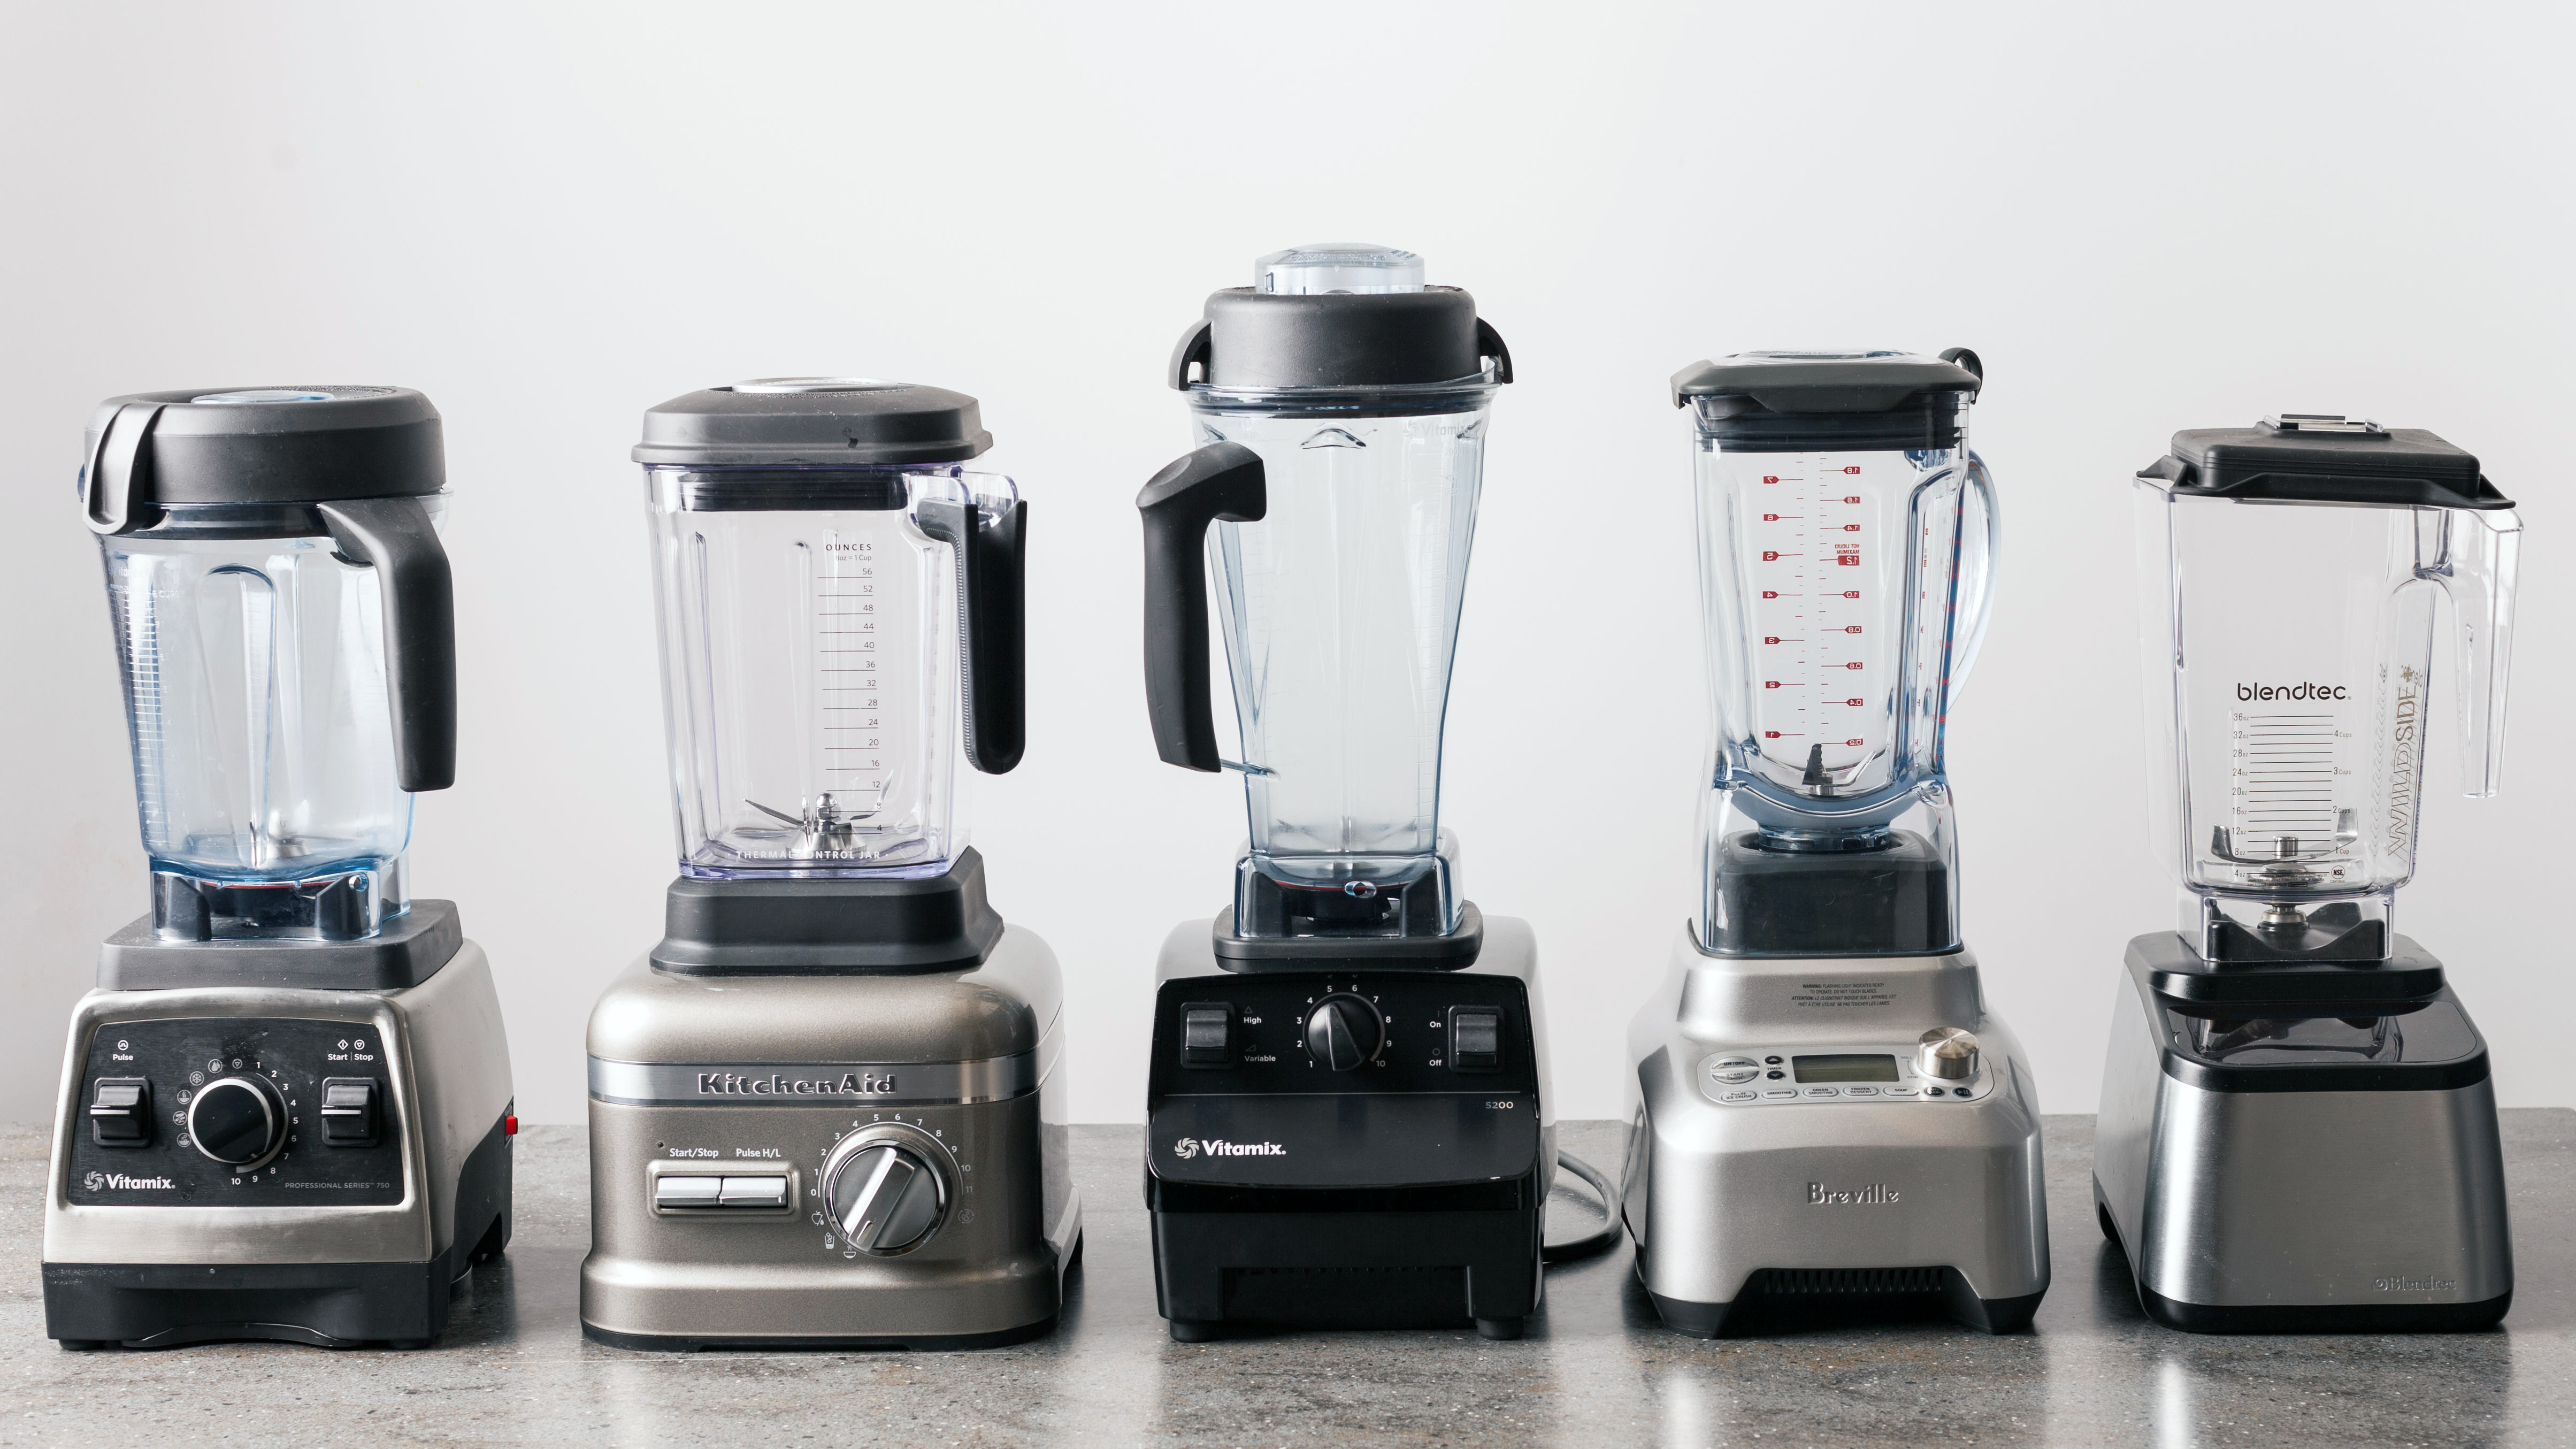 kitchen blenders abt appliance packages testing high end